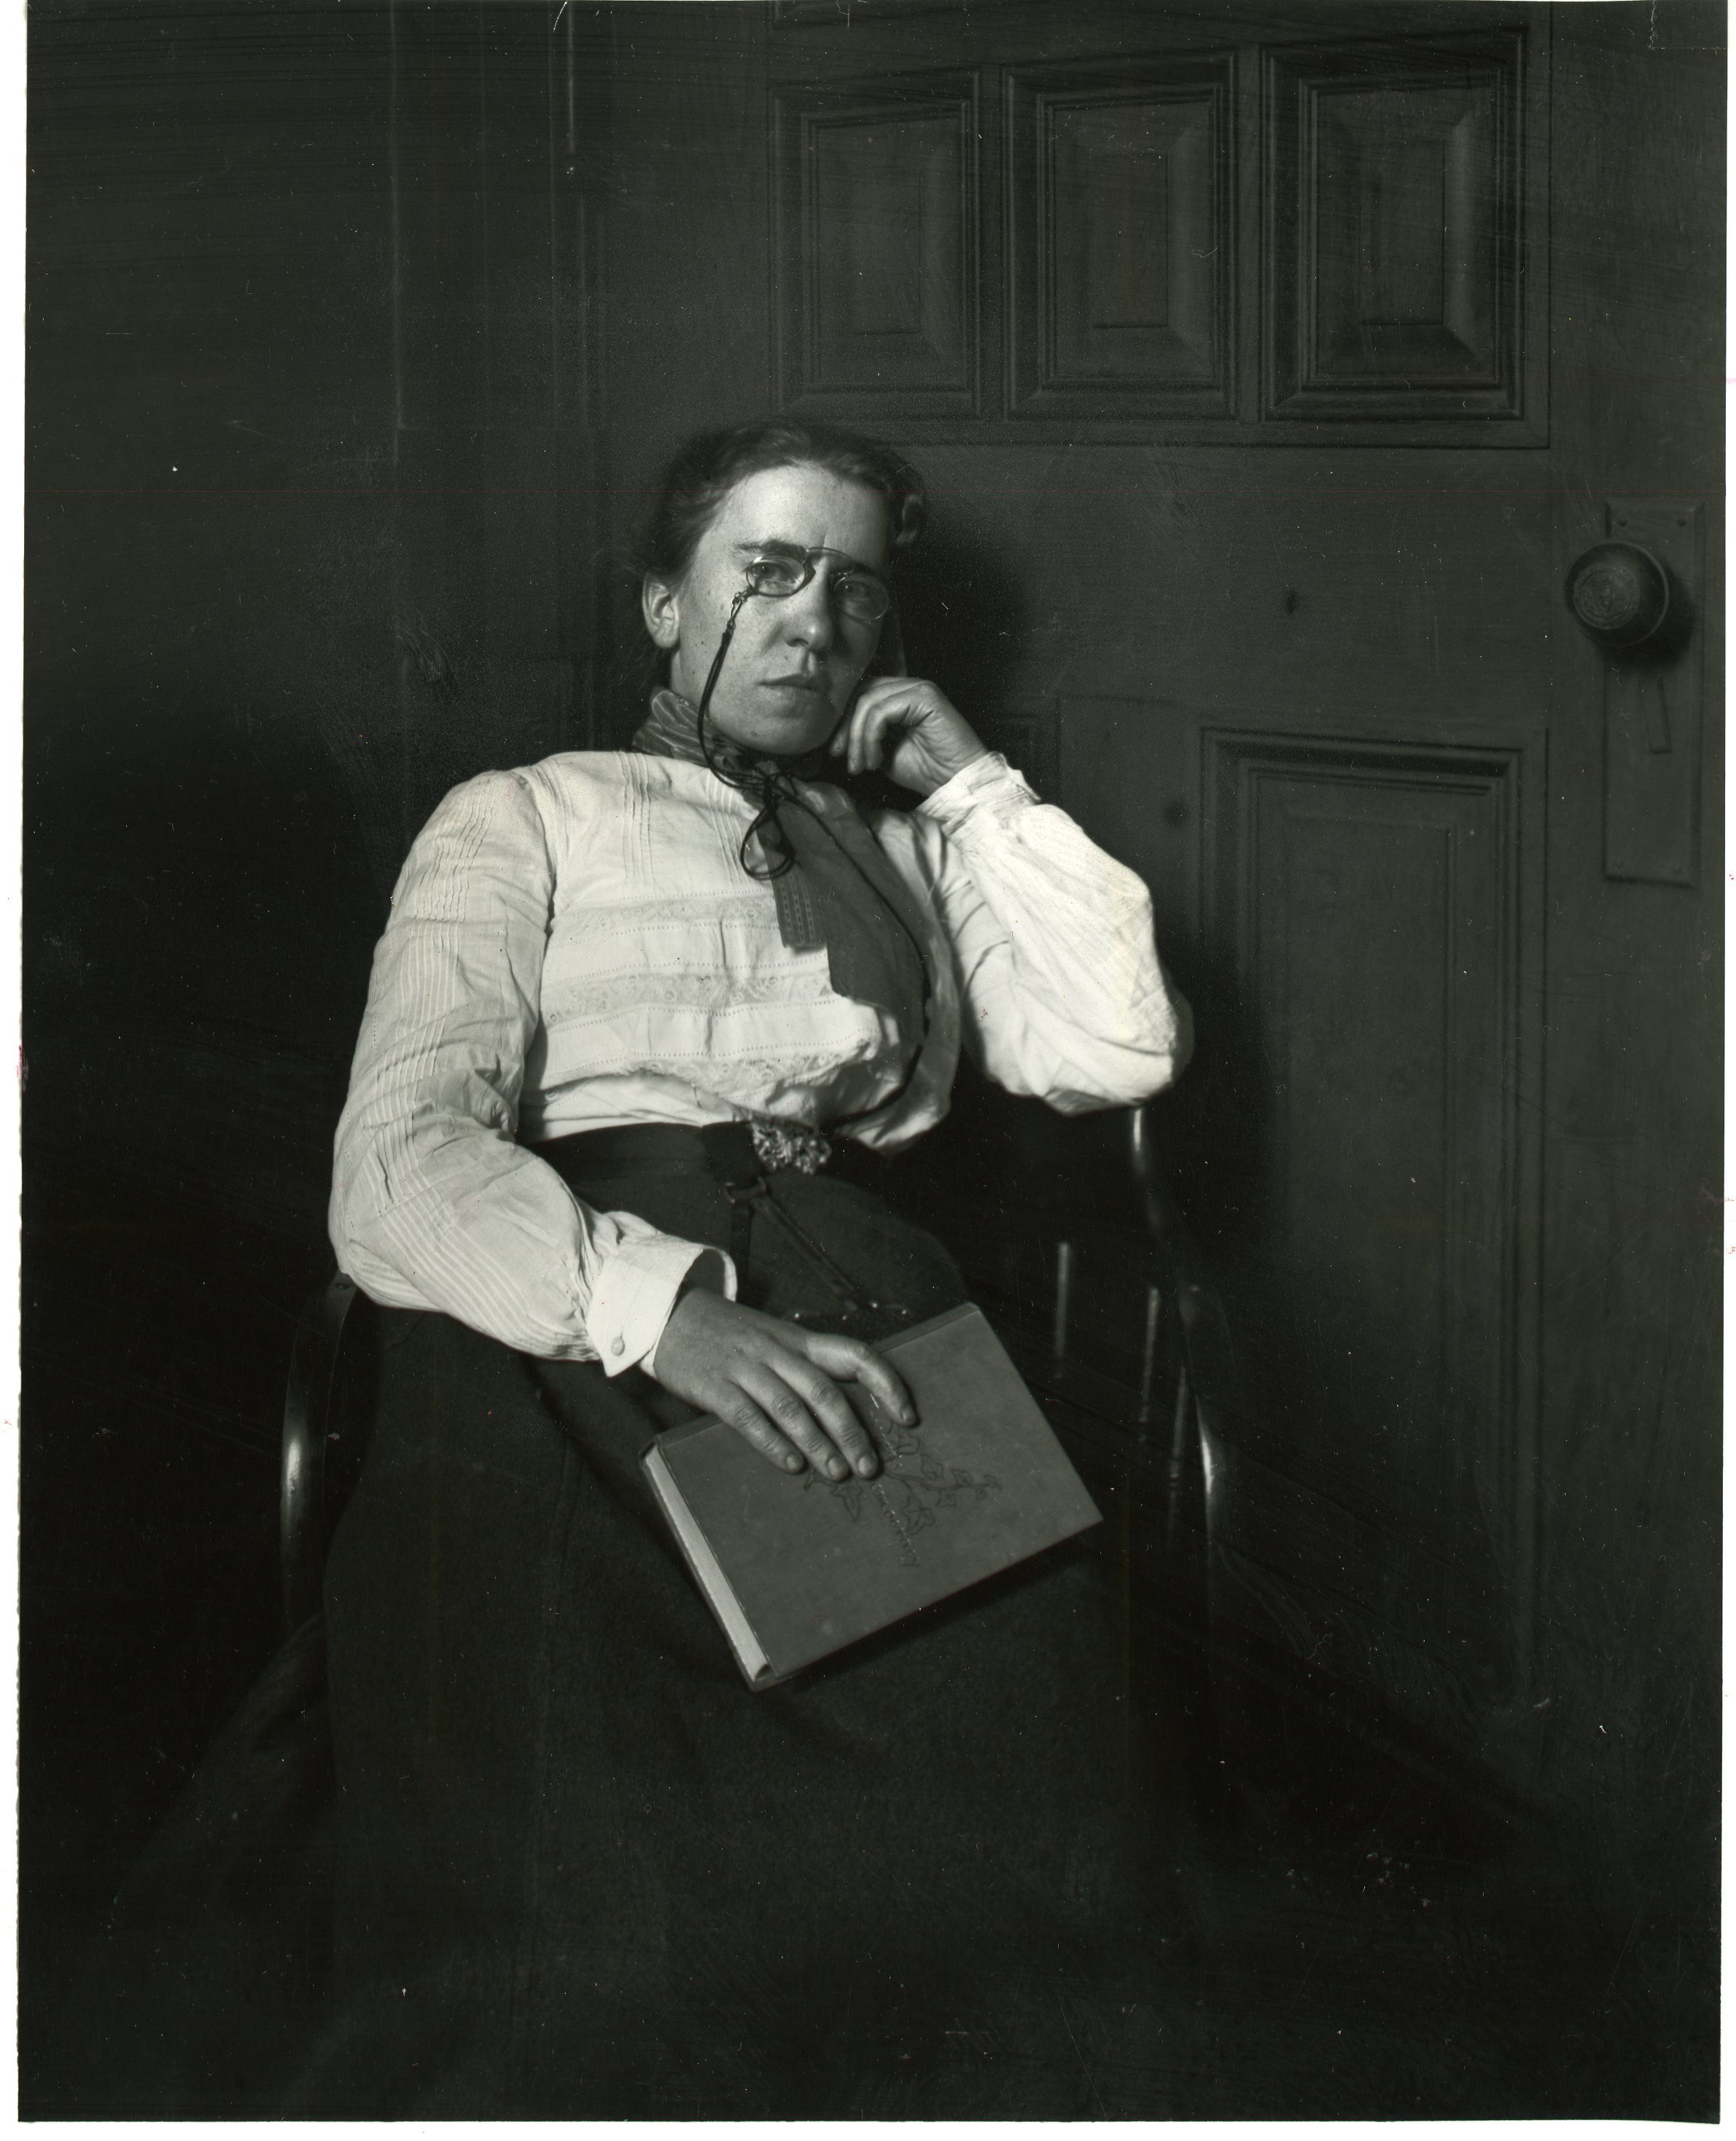 An image of Emma Goldman seated in a chair. She is holding a book in her right hand, and her left-hand rests against her chin. She is wearing a light-colored blouse and dark skirt. Around her neck is a scarf or kerchief. She is also wearing glasses.